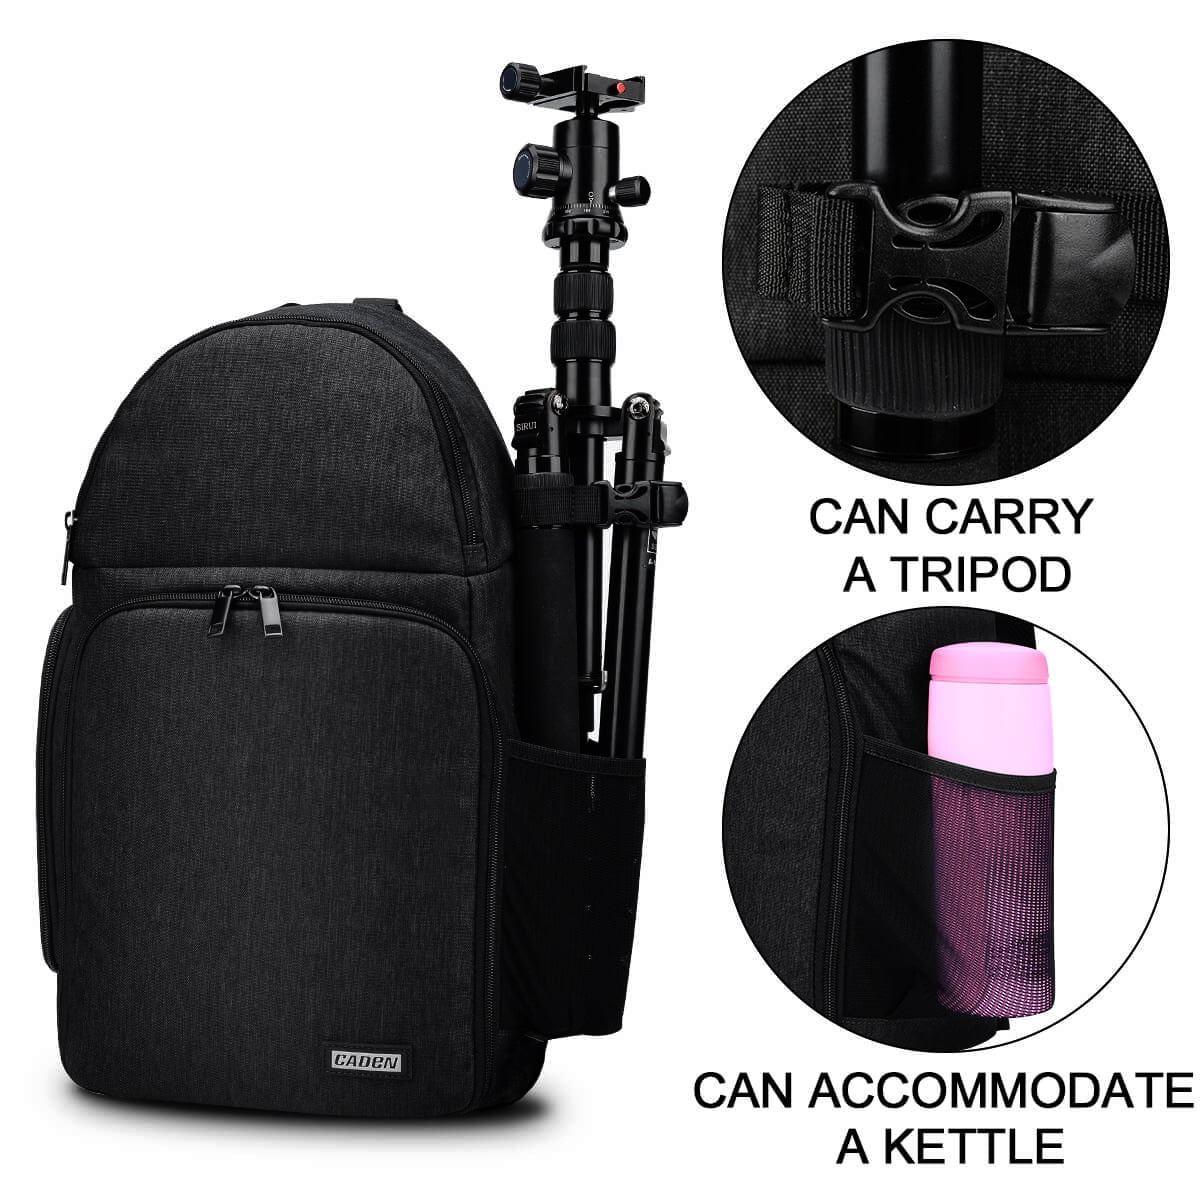 Camera bag Backpacks Shoulder Sling Bag Waterproof Nylon Shockproof Scratch Resistant DSLR Men Women for Canon Nikon Sony